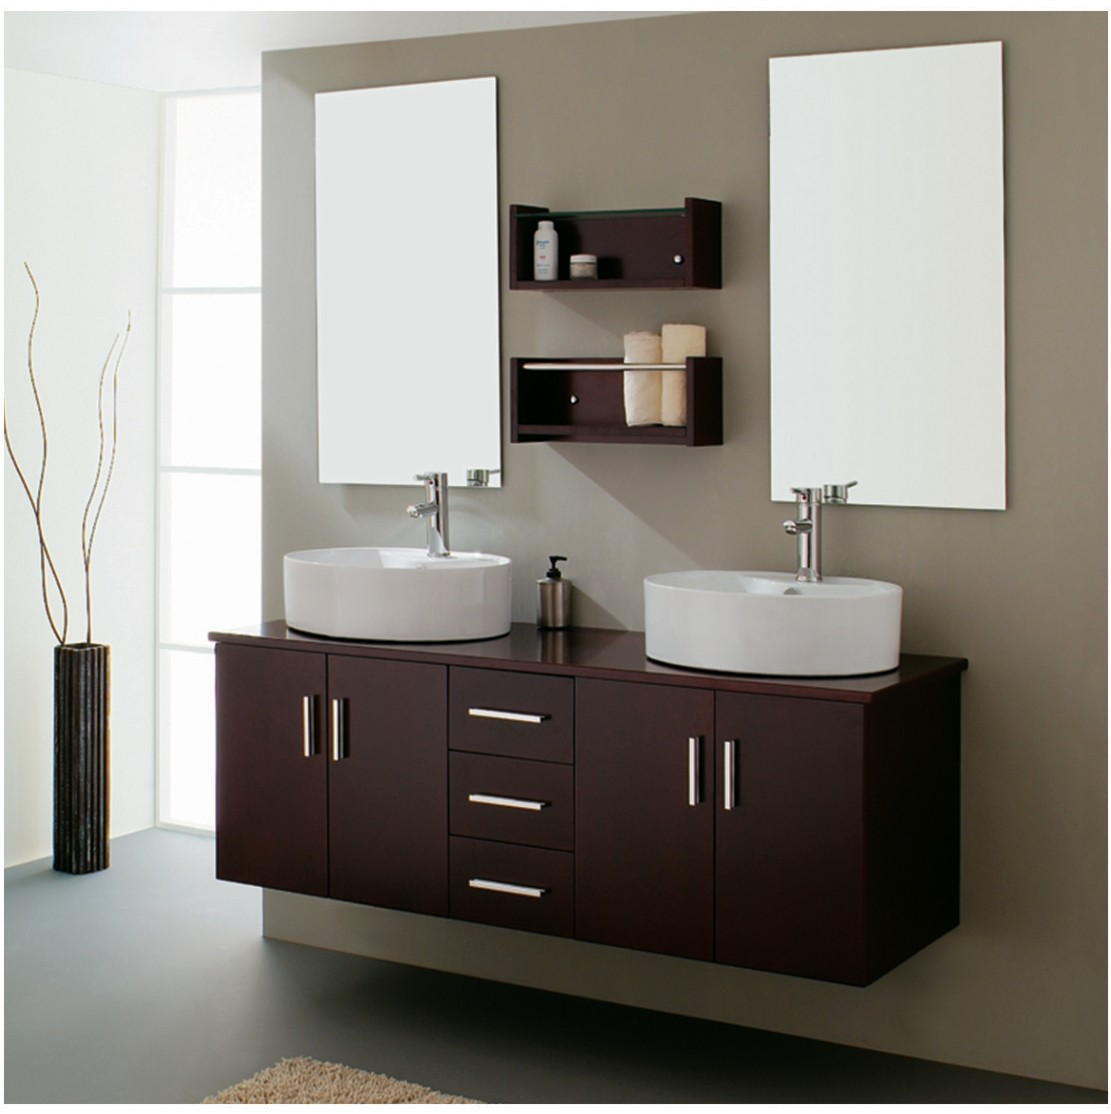 Furniture Sink Vanity : Bathroom Vanity with Sink Ideas: luxury bathroom furniture vanities ...